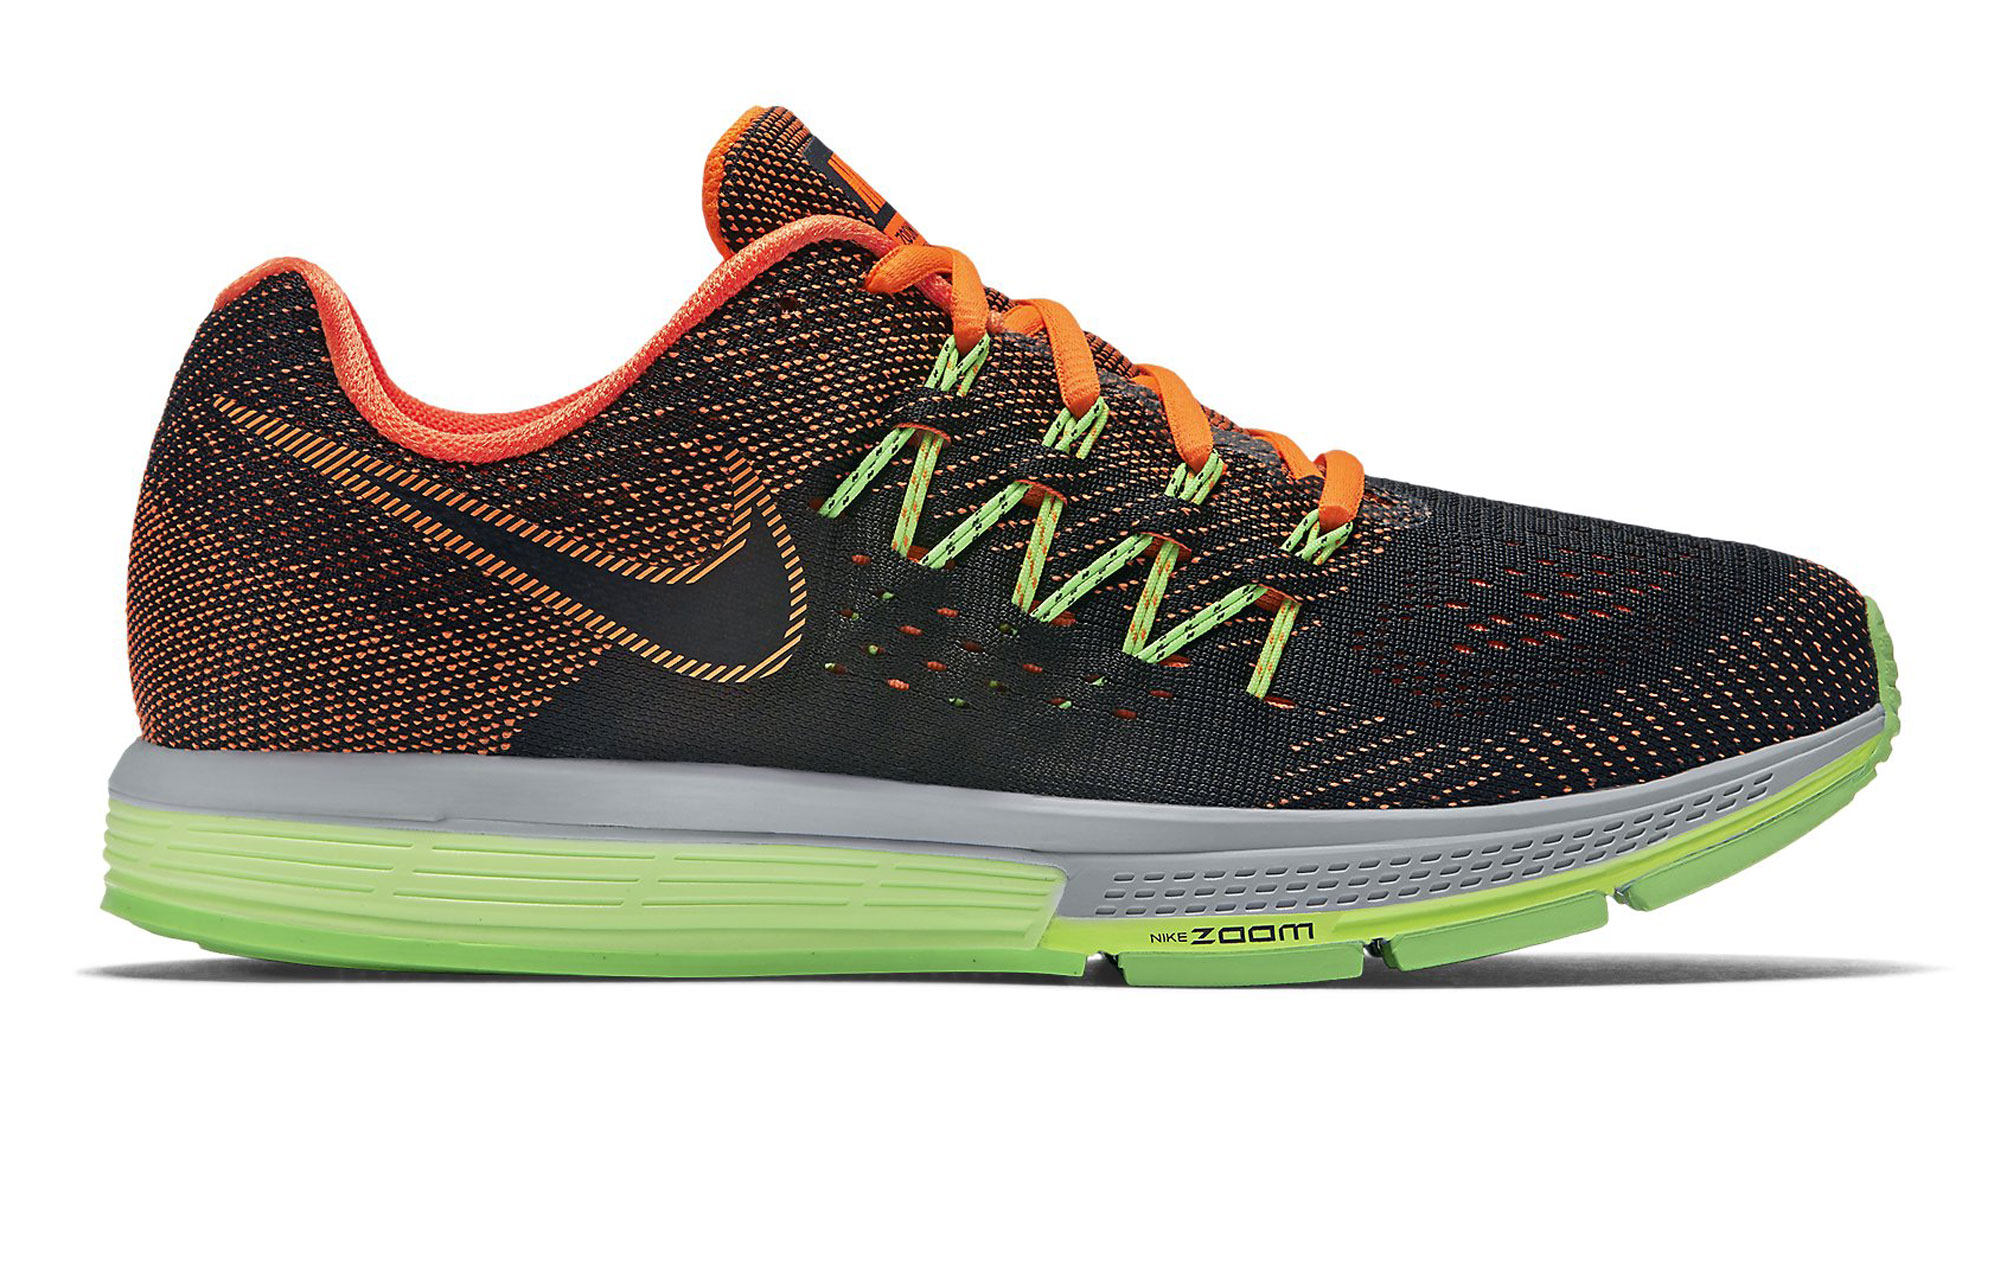 NIKE Shoes AIR ZOOM VOMERO 10 Orange Green Men